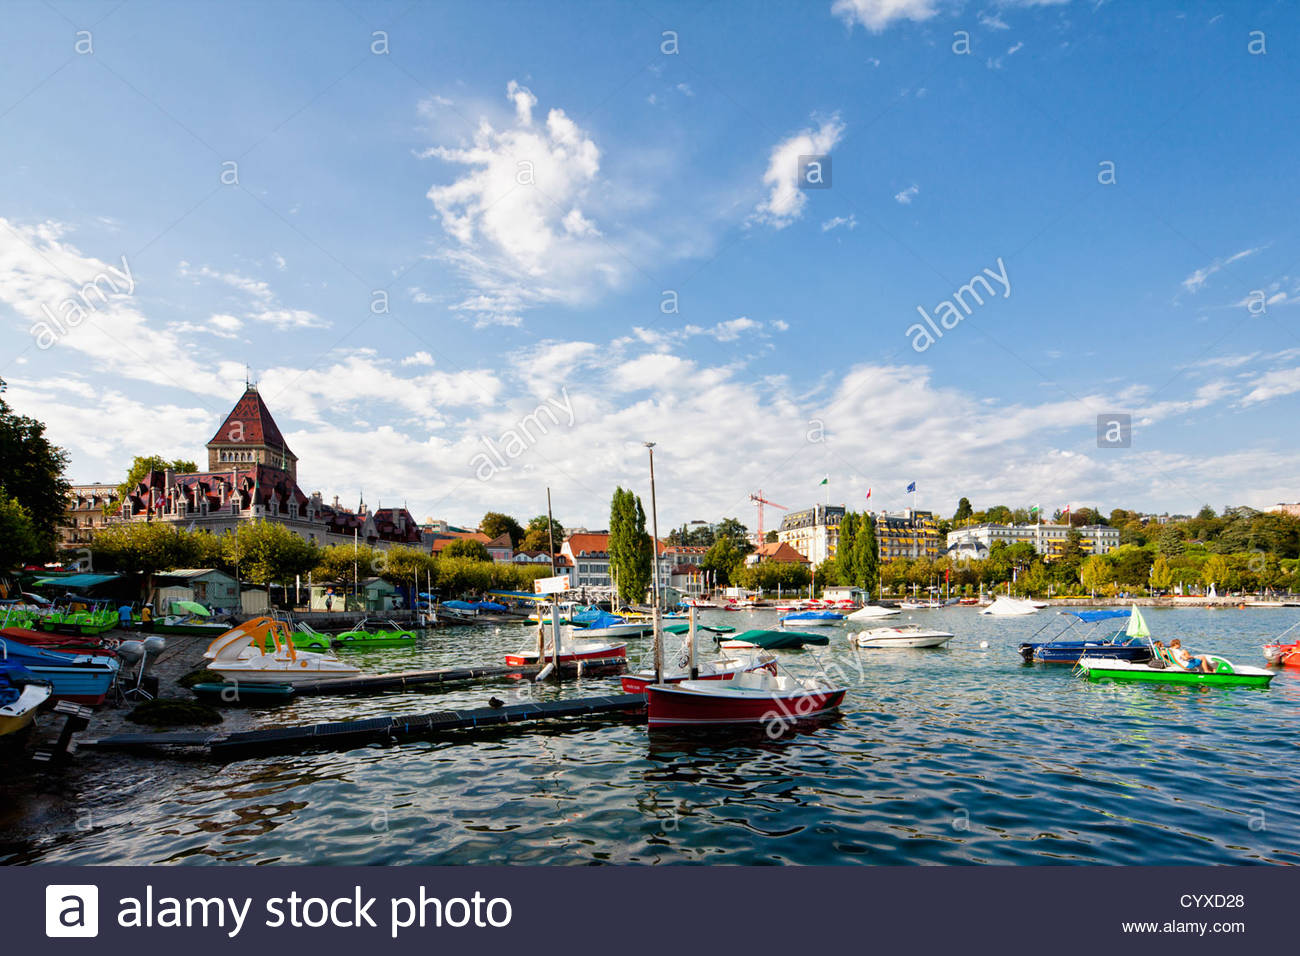 Switzerland, Lausanne, View of sailing ships and paddleboat in port - Stock Image